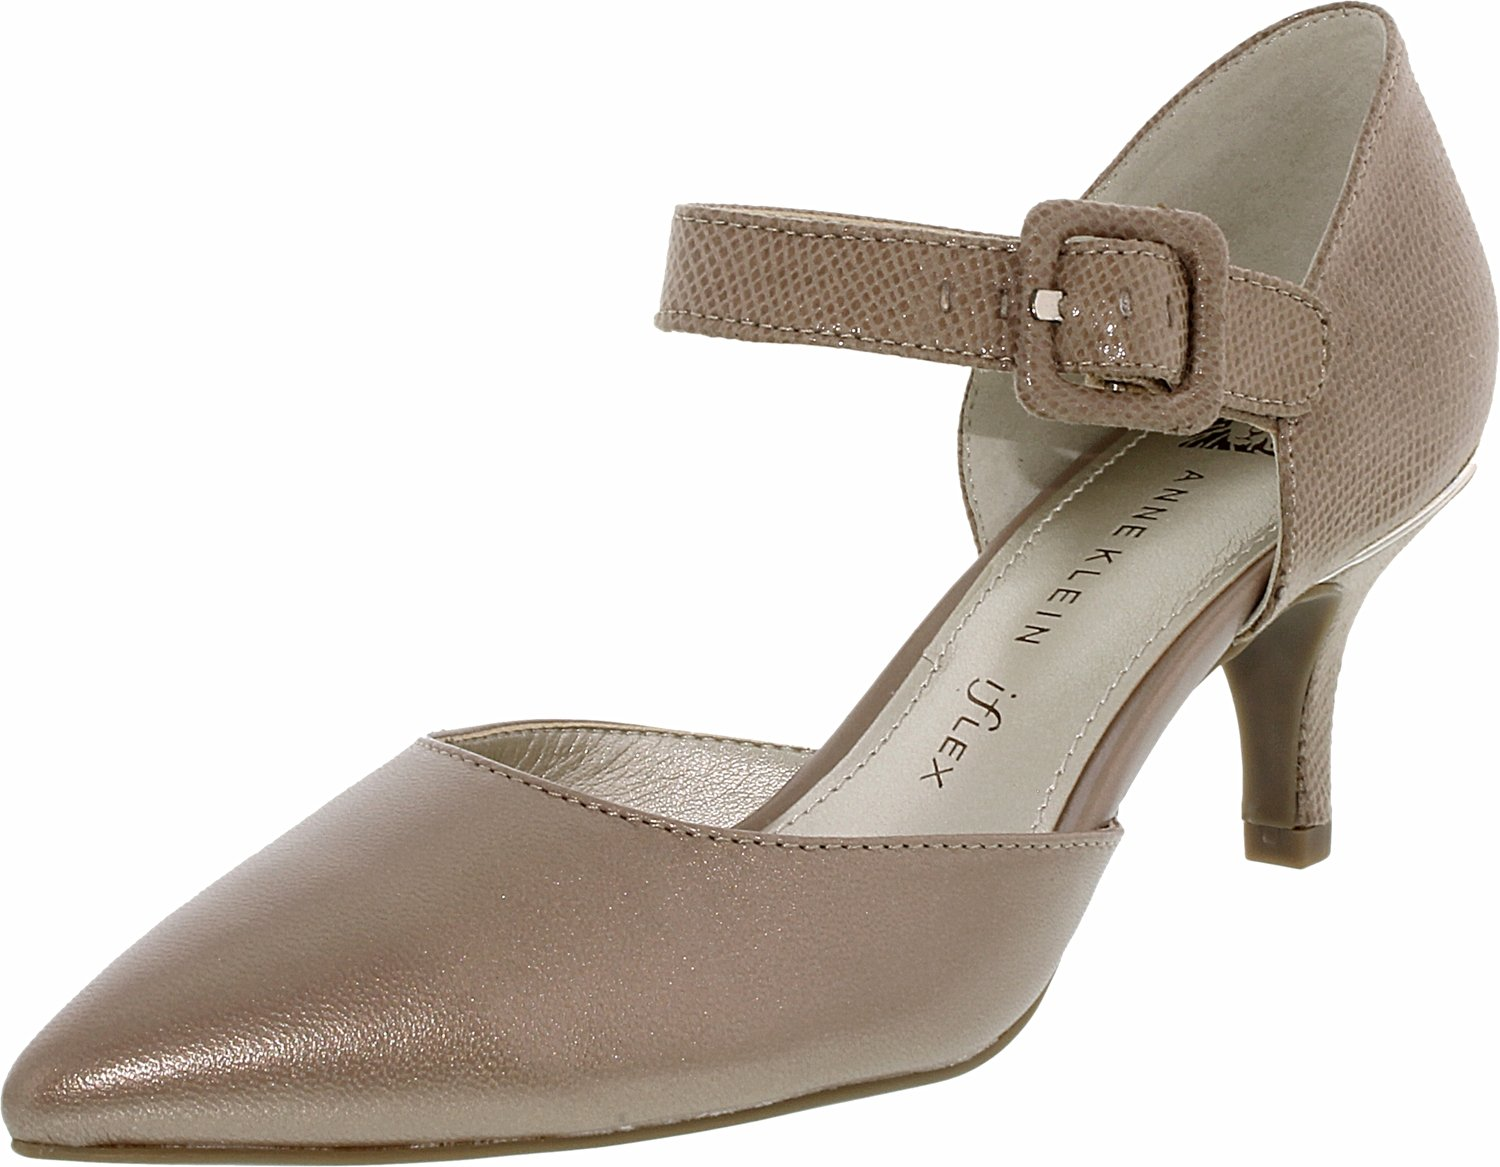 Womens Shoes Anne Klein AKFinale Taupe/Taupe Fabric